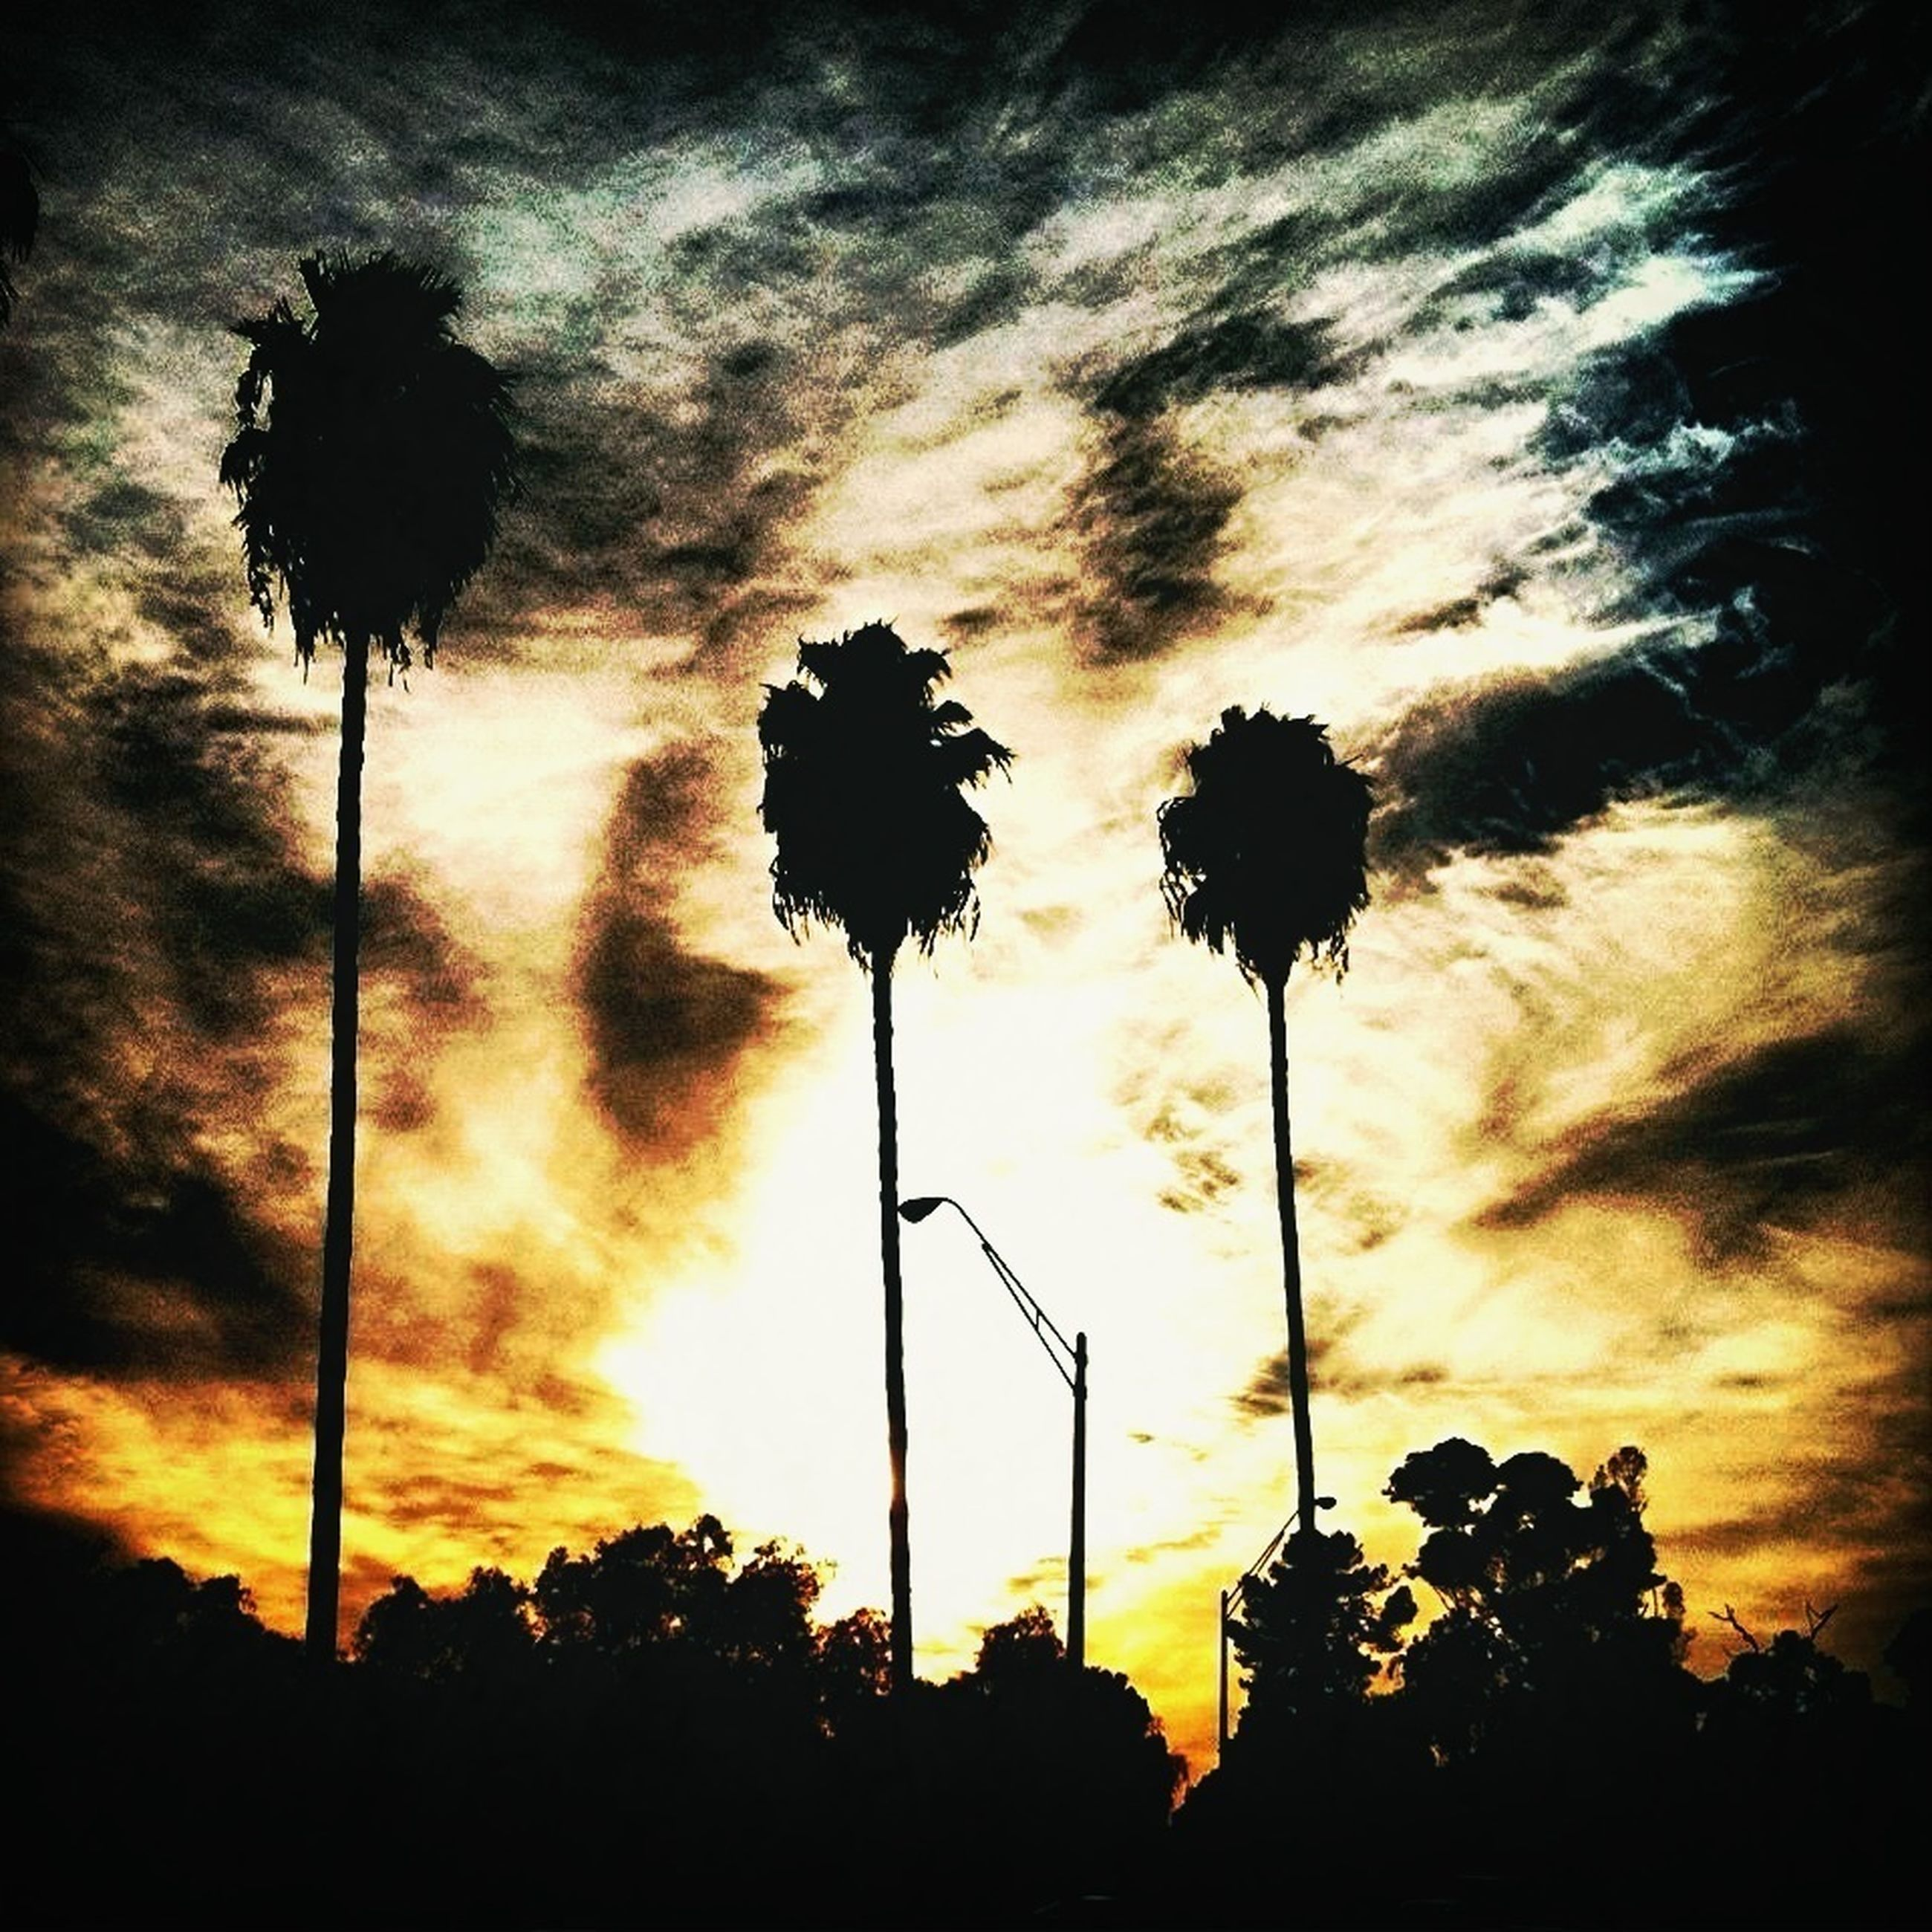 silhouette, sunset, sky, low angle view, cloud - sky, tree, beauty in nature, nature, growth, street light, tranquility, flower, cloudy, dusk, cloud, palm tree, orange color, scenics, outdoors, outline